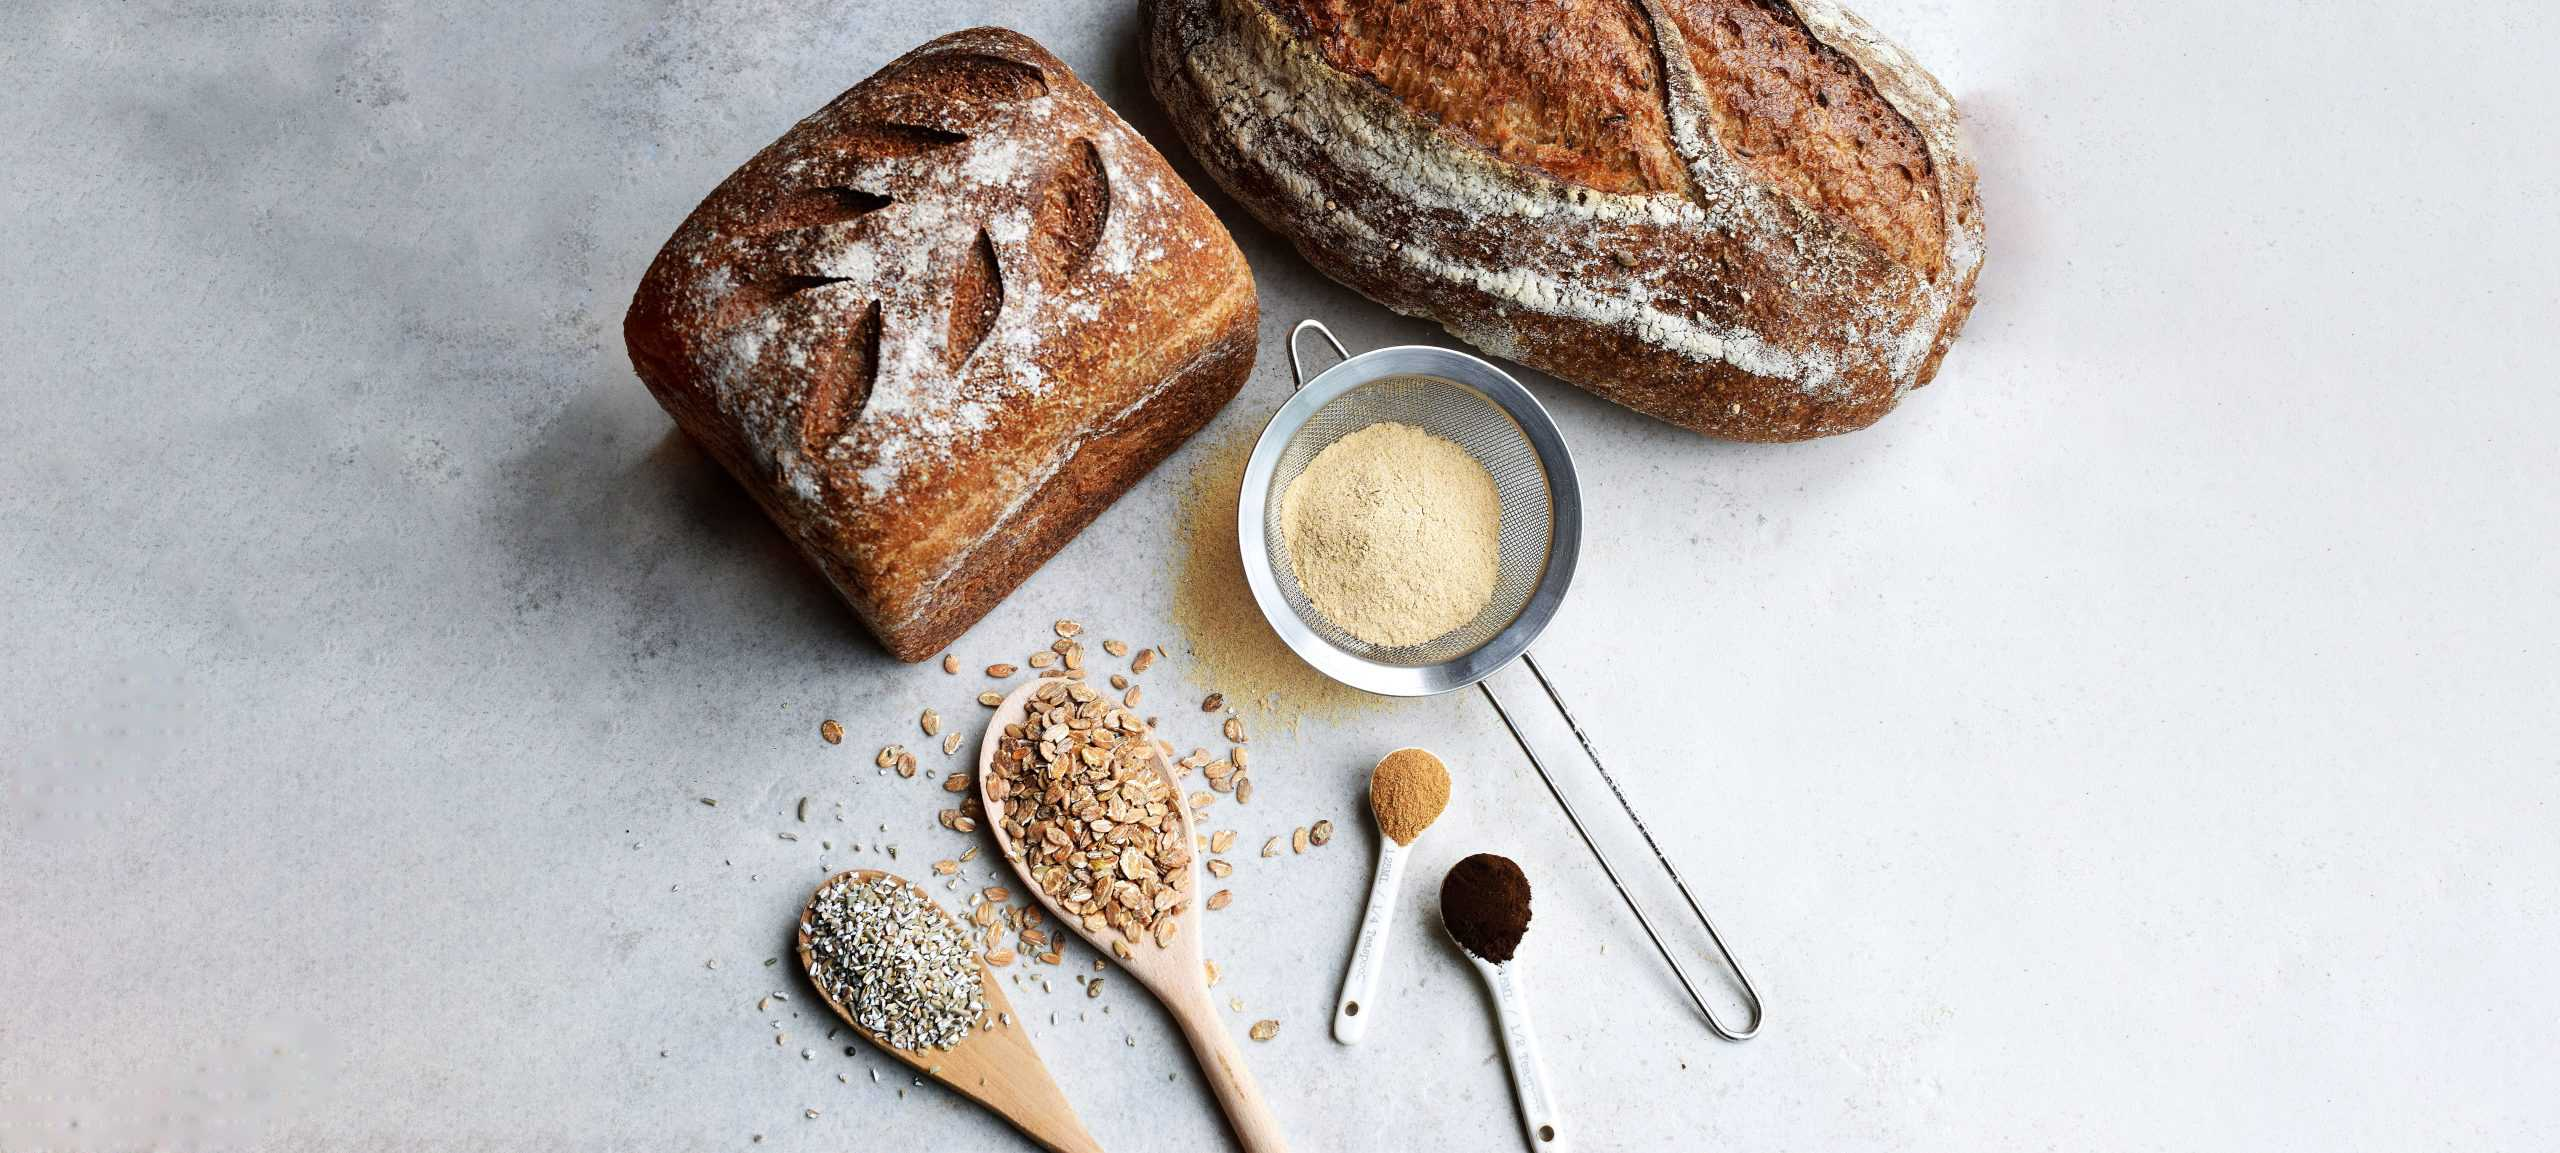 EDME malted ingredients for artisan breads extended